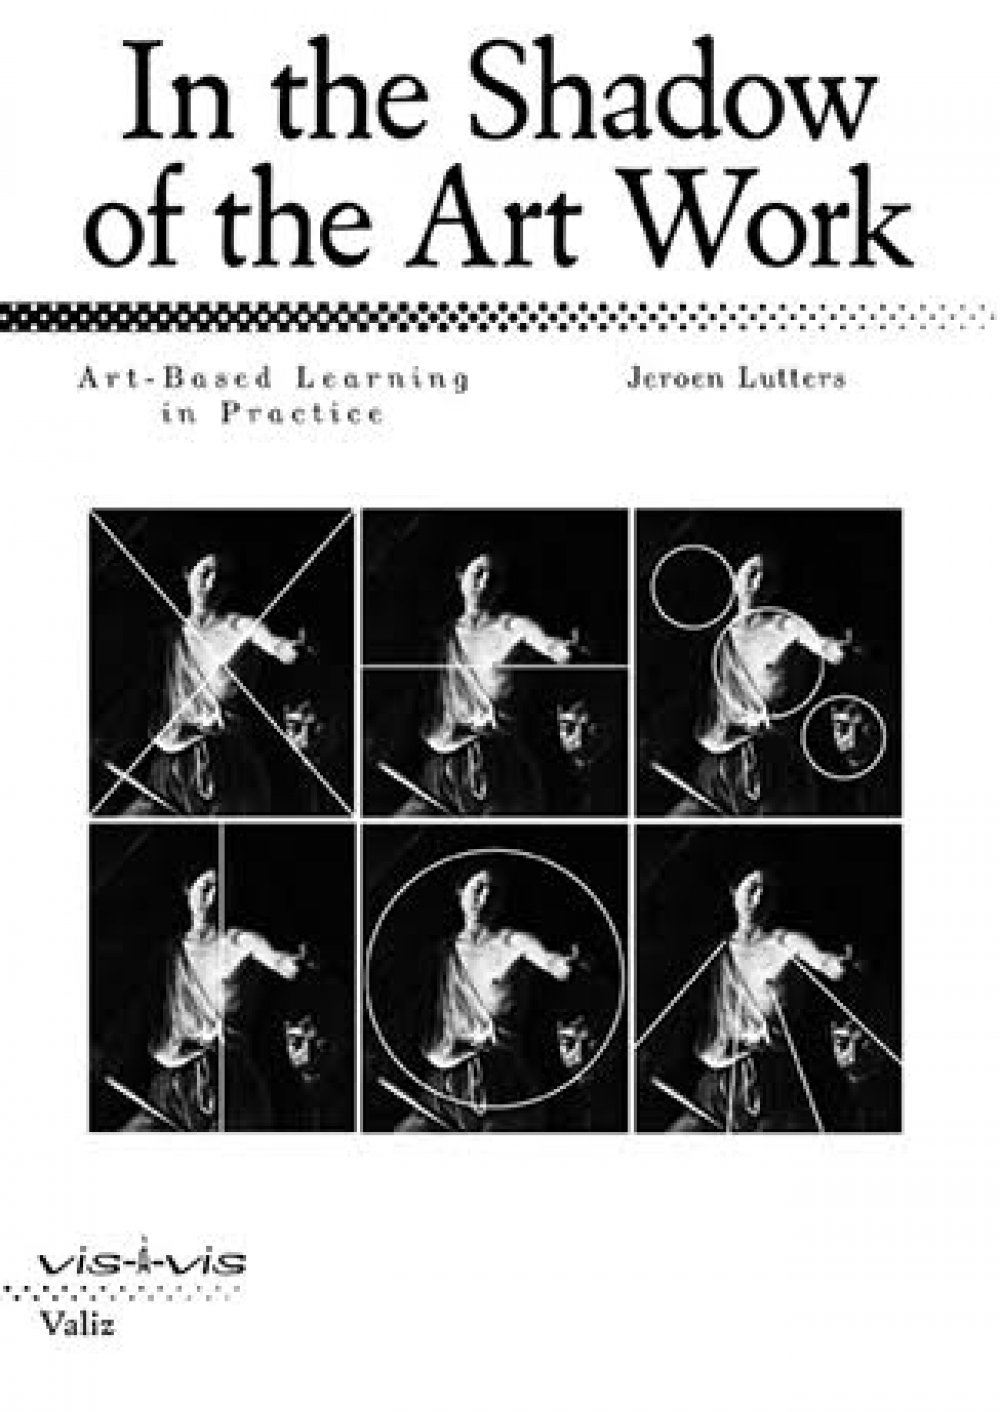 Publication: In the shadow of the Art Work